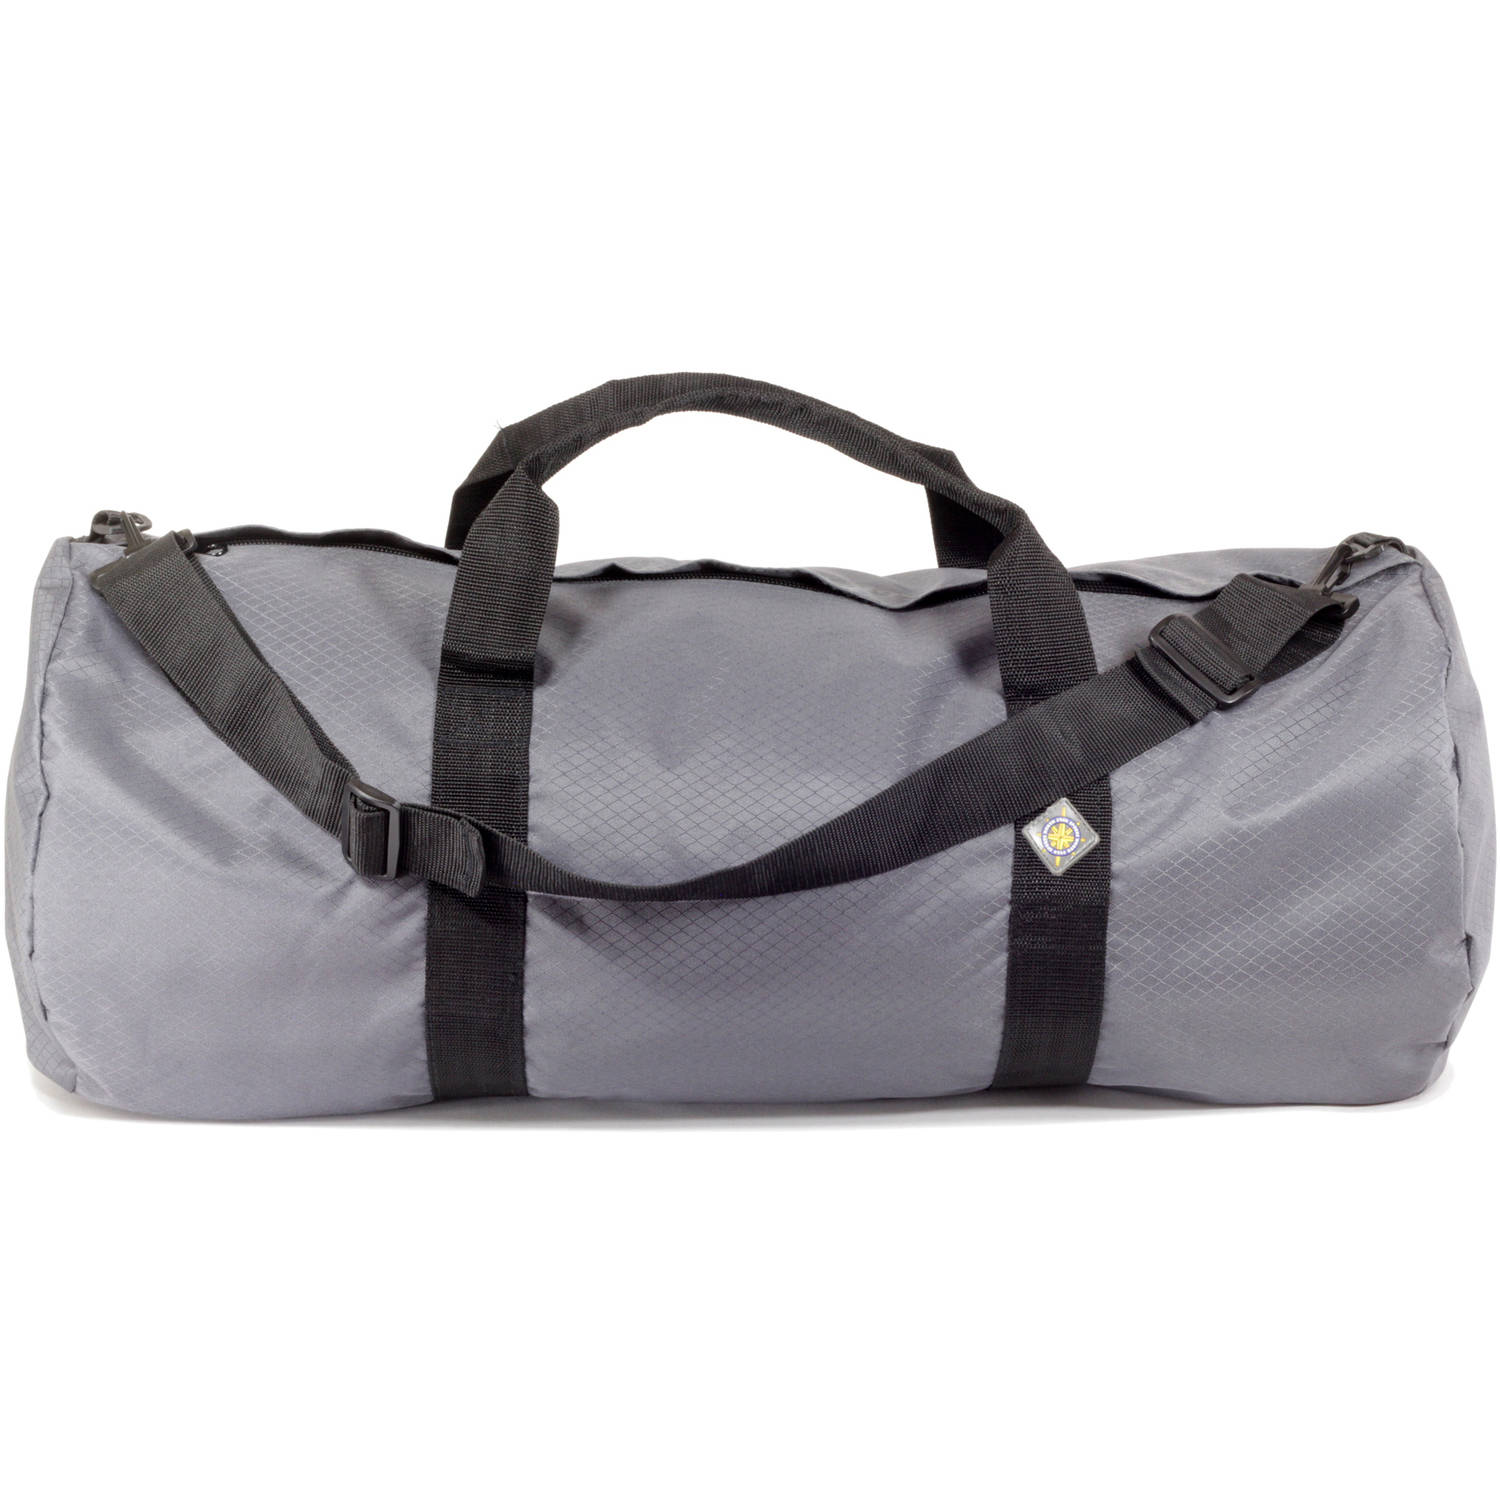 North Star SD 1430 Sport Duffle Bag, Steel Gray by Northstar Bags